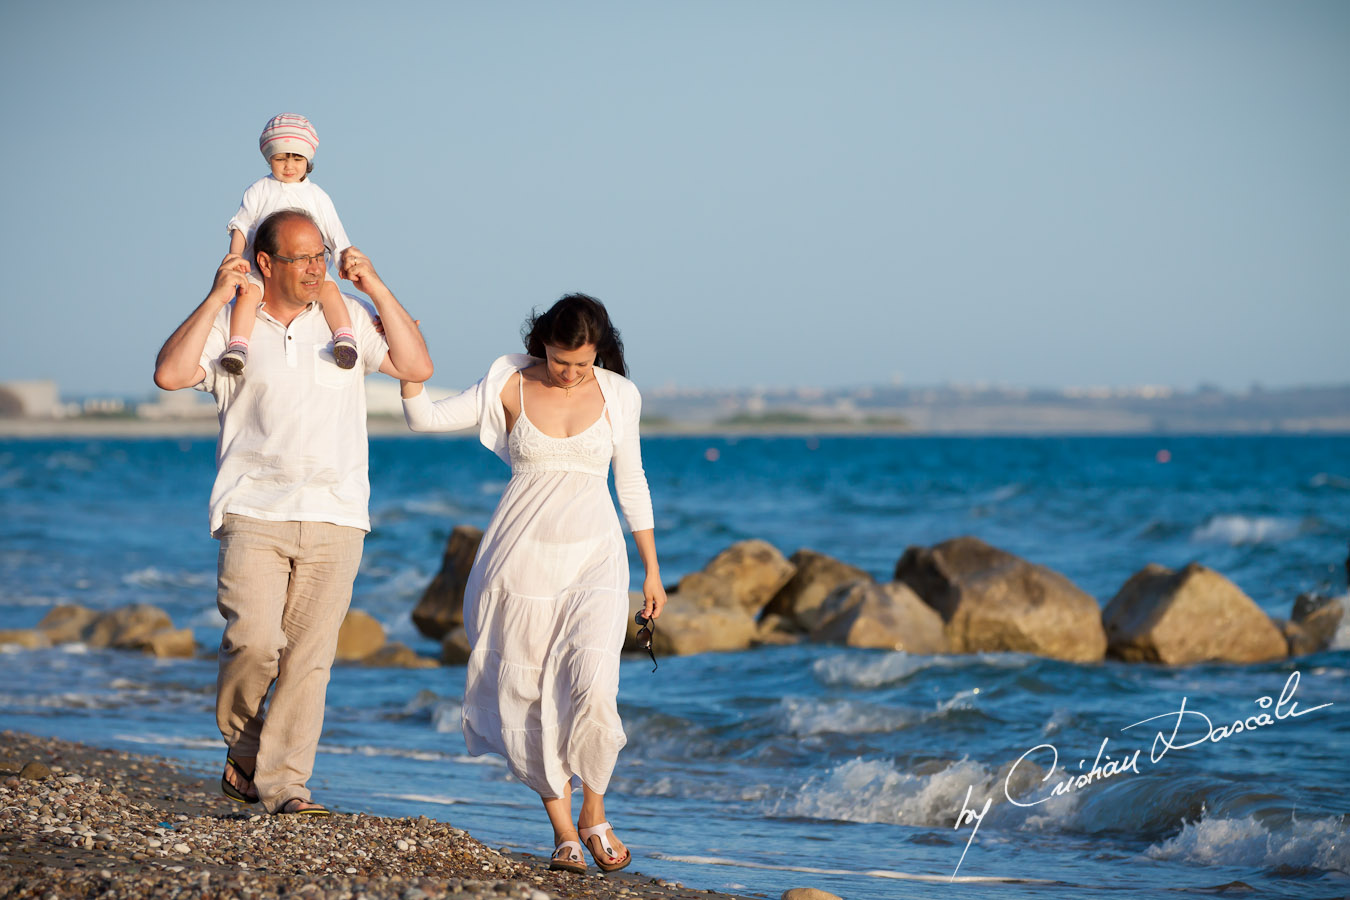 Laurent & Family - Beach Photo Shoot by Cyprus Wedding Photographer - Cristian Dascalu